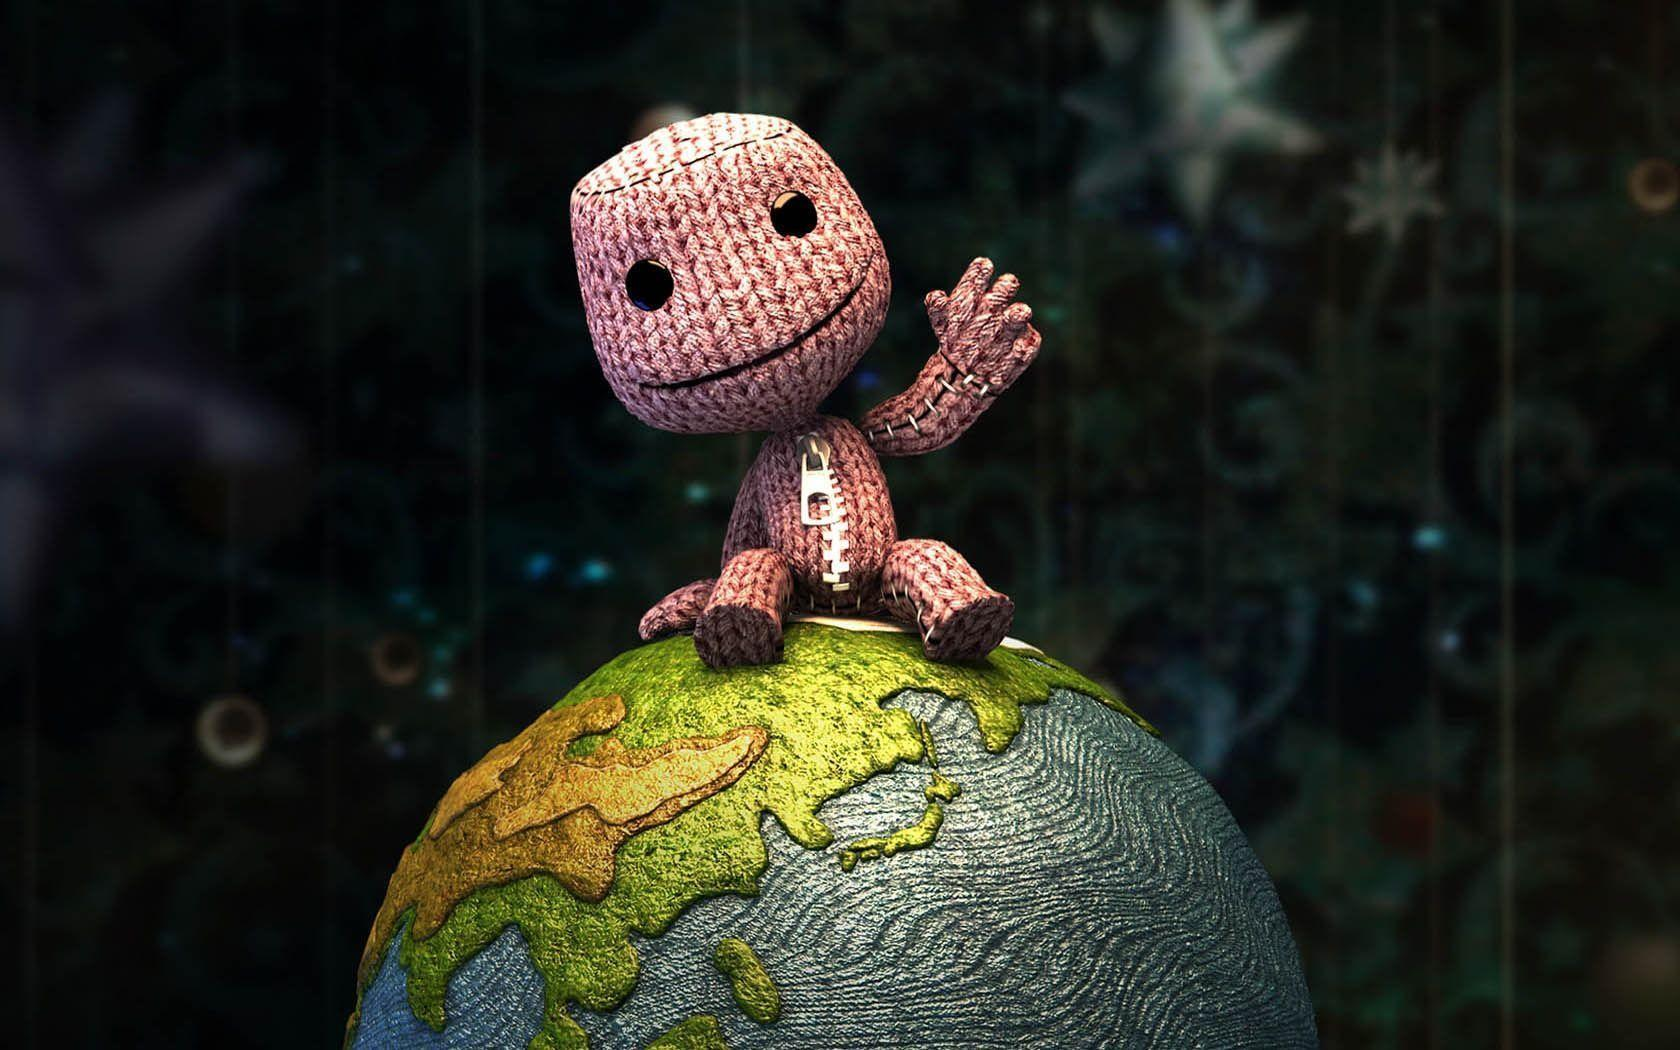 LittleBigPlanet desktop wallpapers